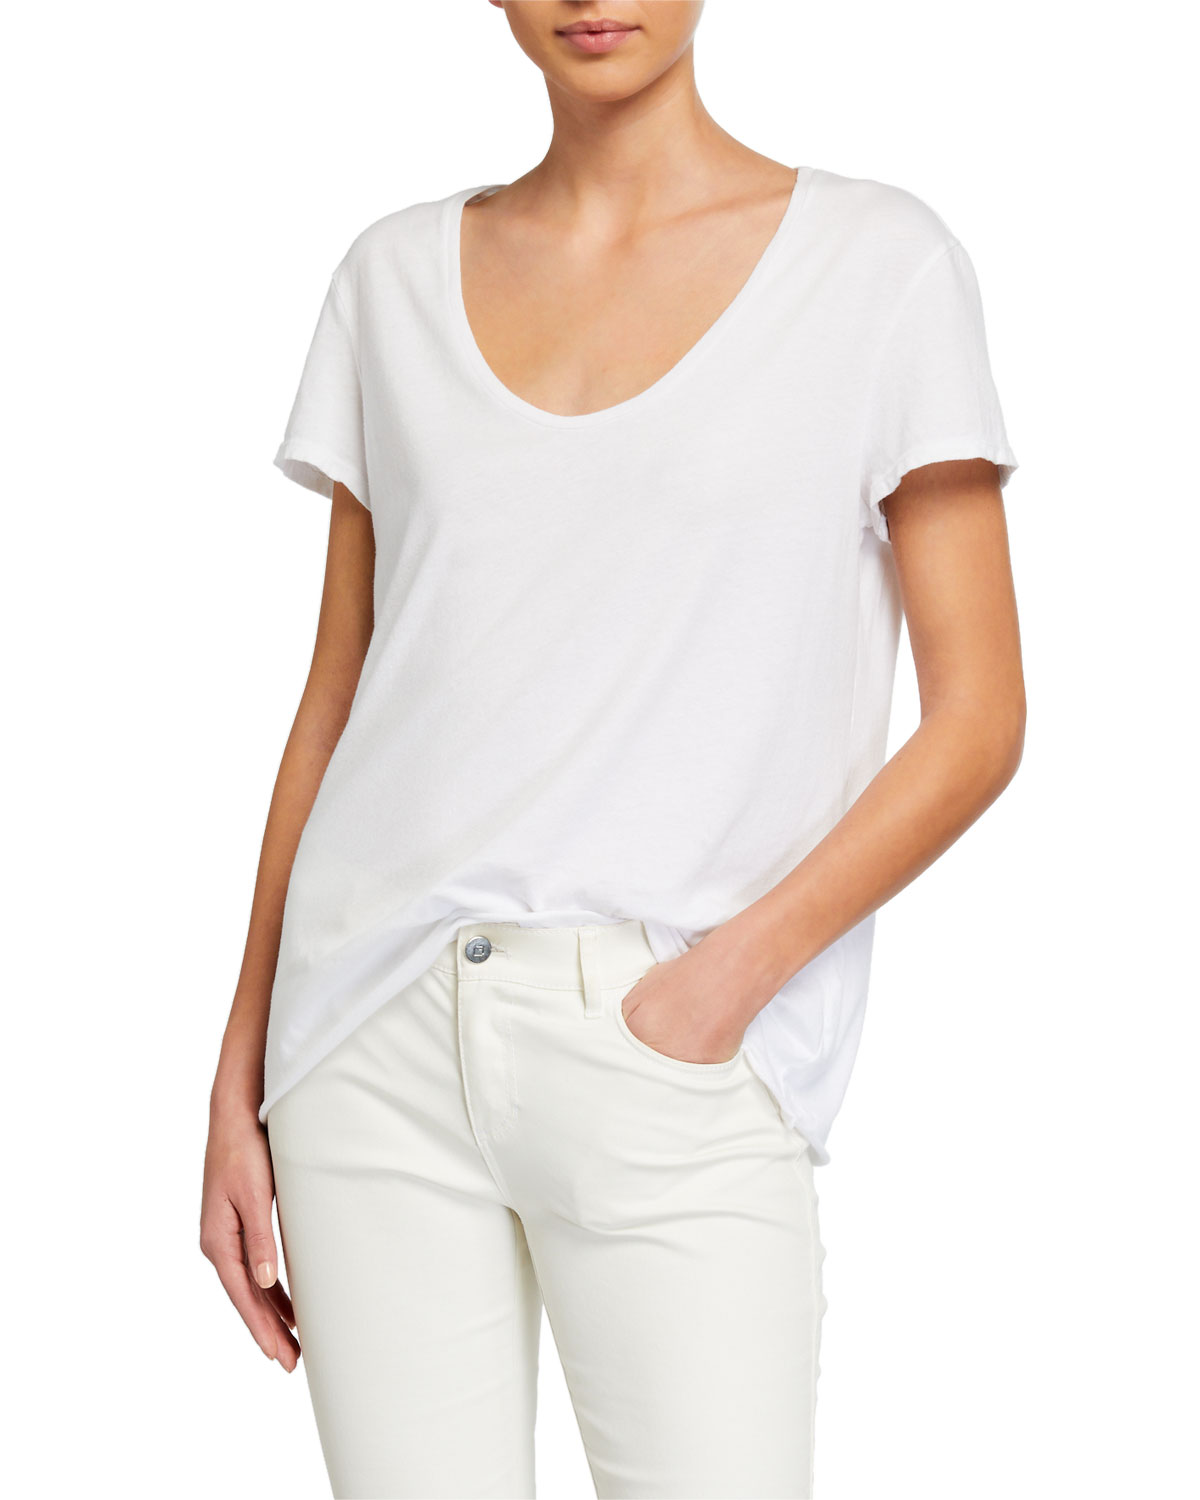 Frank & Eileen Tee Lab Essential Scoop-Neck Short-Sleeve Tee